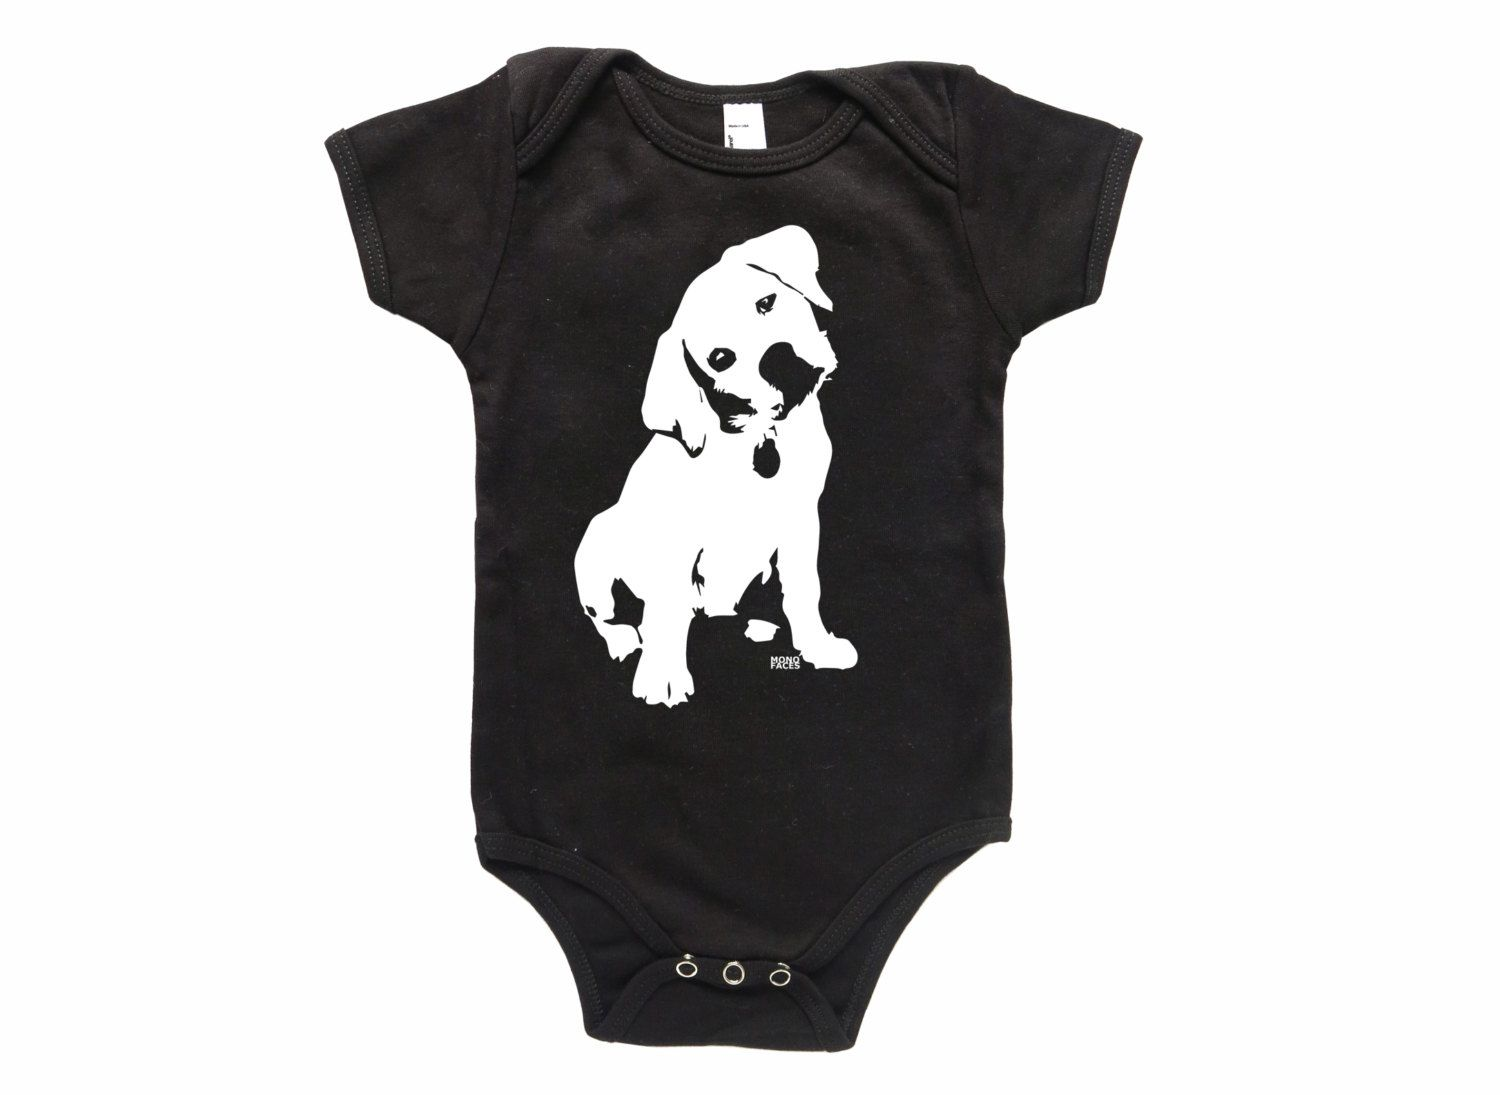 Labrador Retriever Baby Onepiece, Dog Baby Clothes, Dog Baby Shower,  Personalized Baby Clothes, Toddler Girl Clothes, 1st Birthday Gift